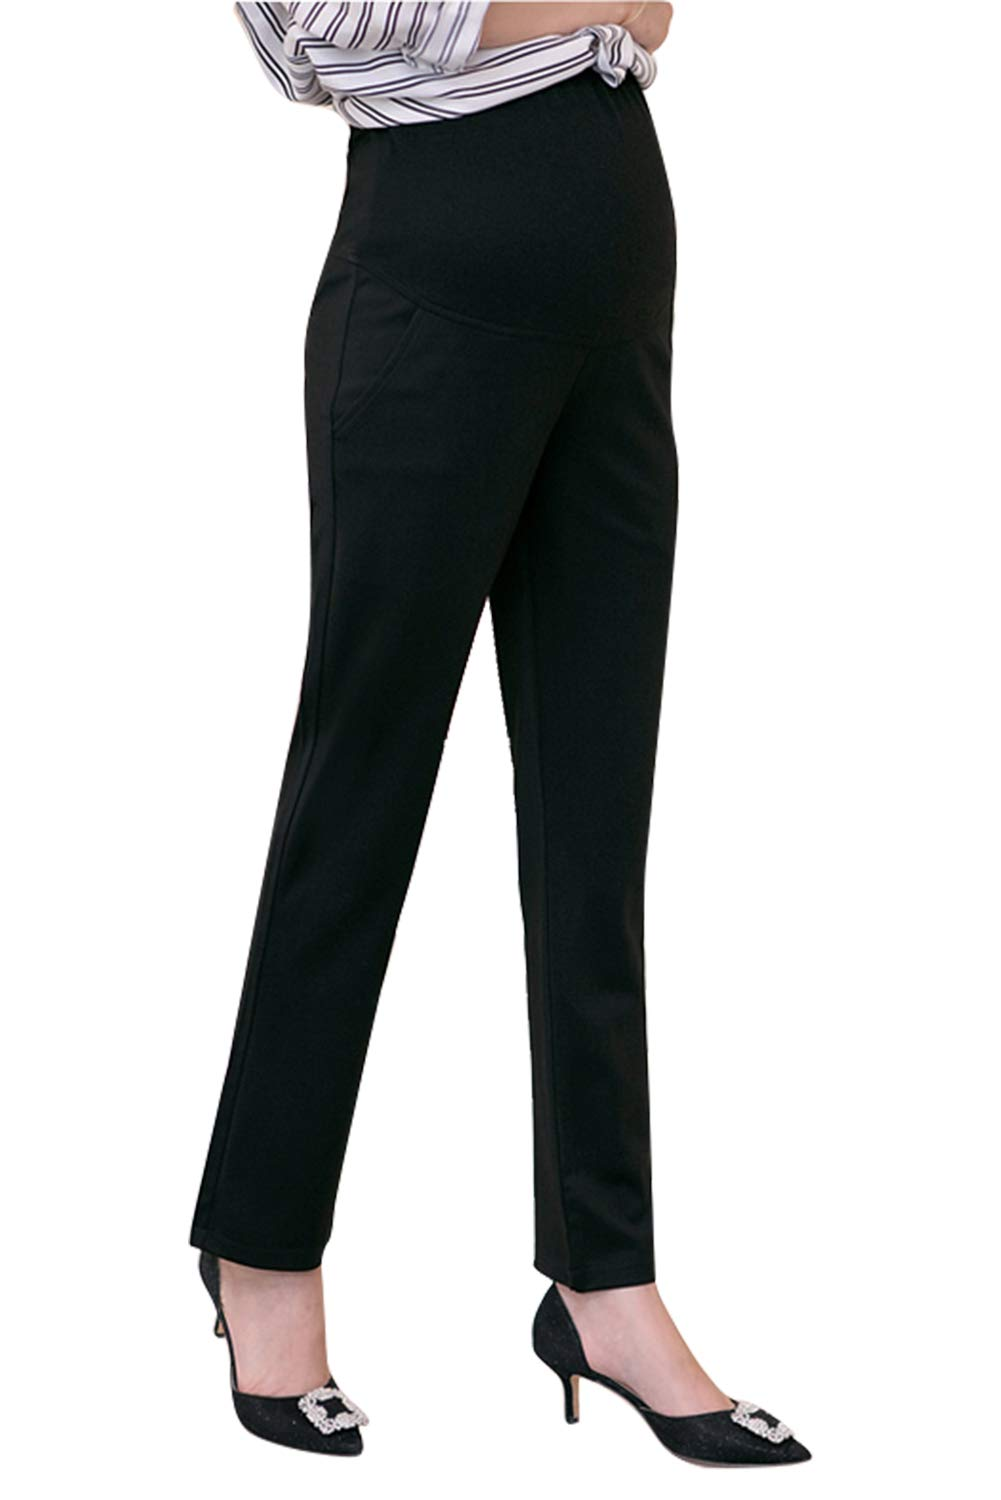 Fengstore Maternity Work Dress Pants Bootcut High Waist Stretch Trousers for Pregnancy Office Women